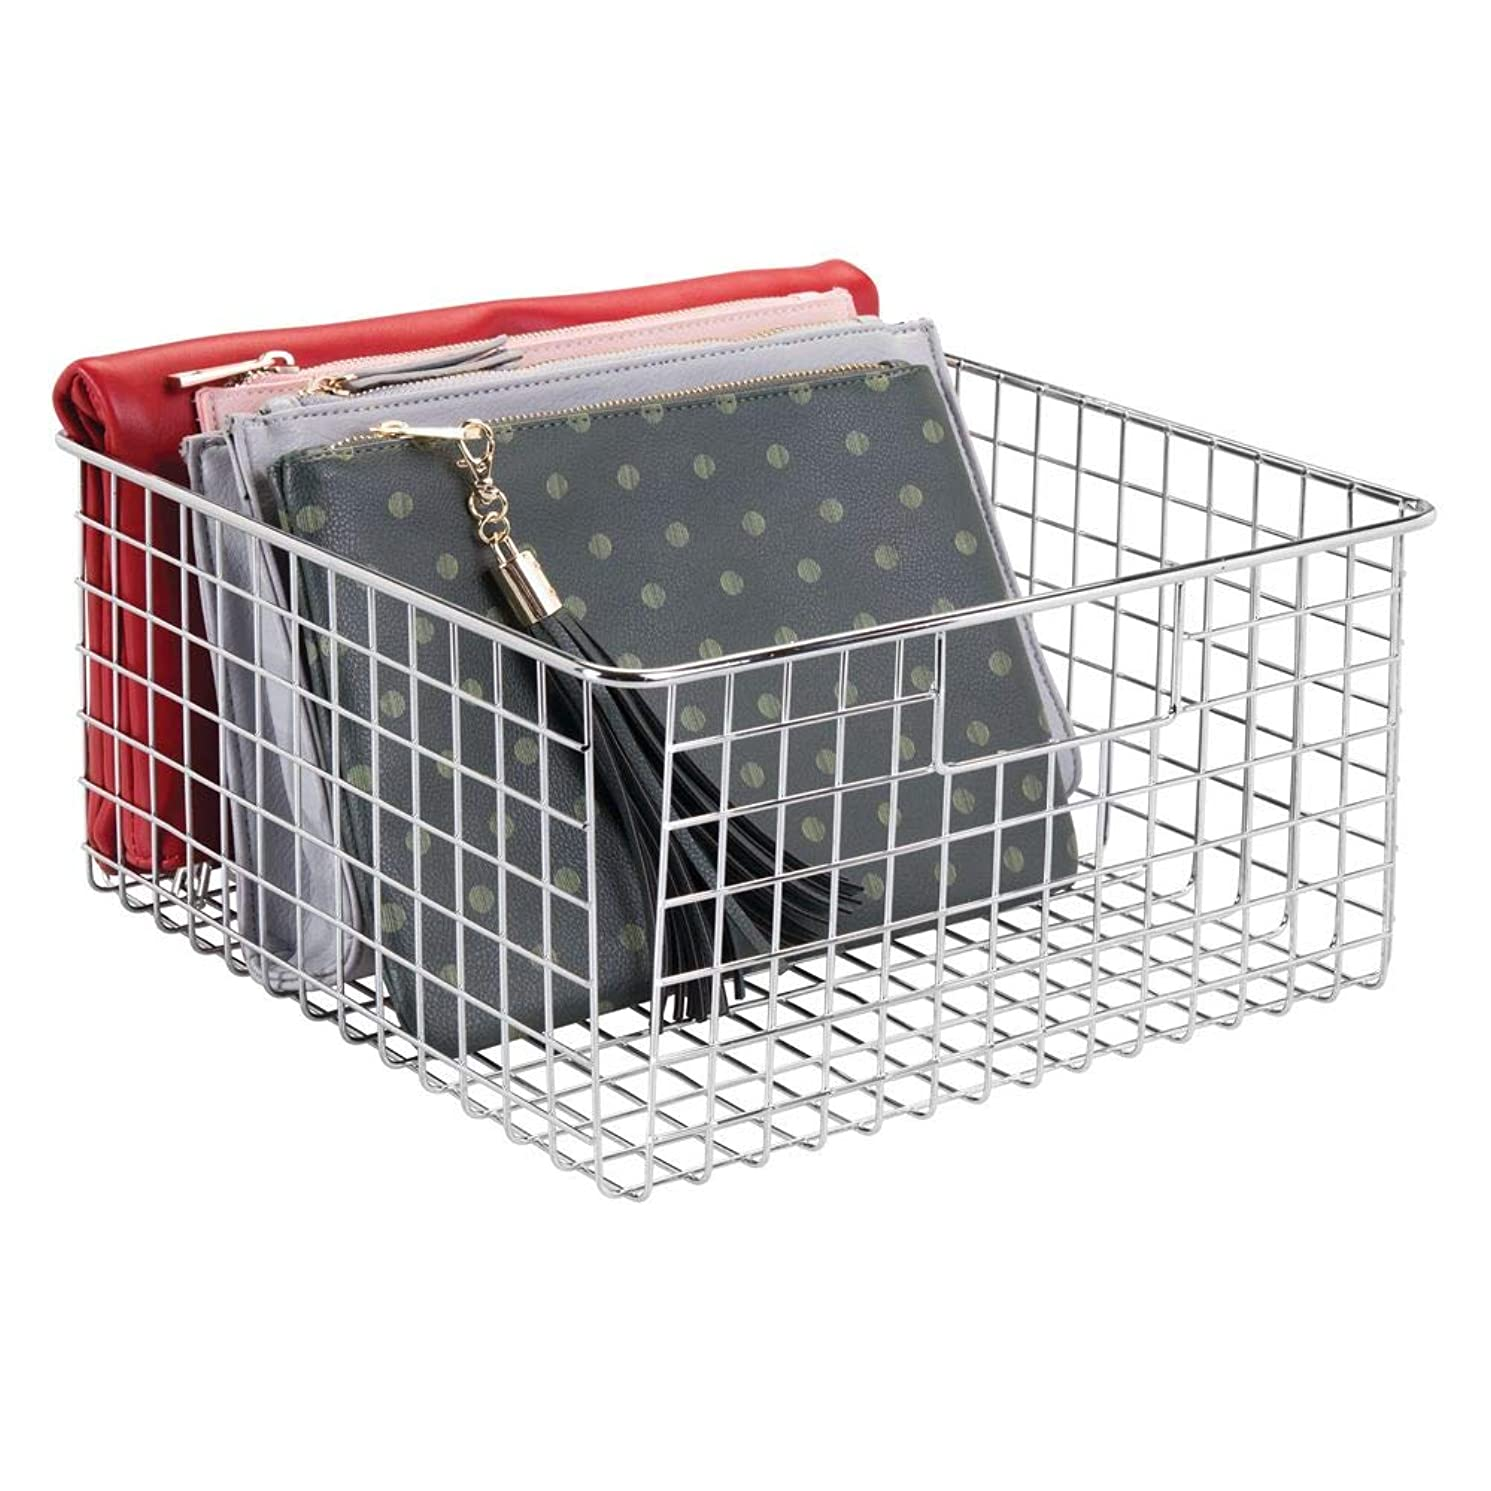 mDesign Large Farmhouse Decor Metal Wire Storage Basket Bin with Handles for Storage & Organizing Closets, Shelves and Cabinets in Bedrooms, Bathrooms, Entryways and Hallways - 6